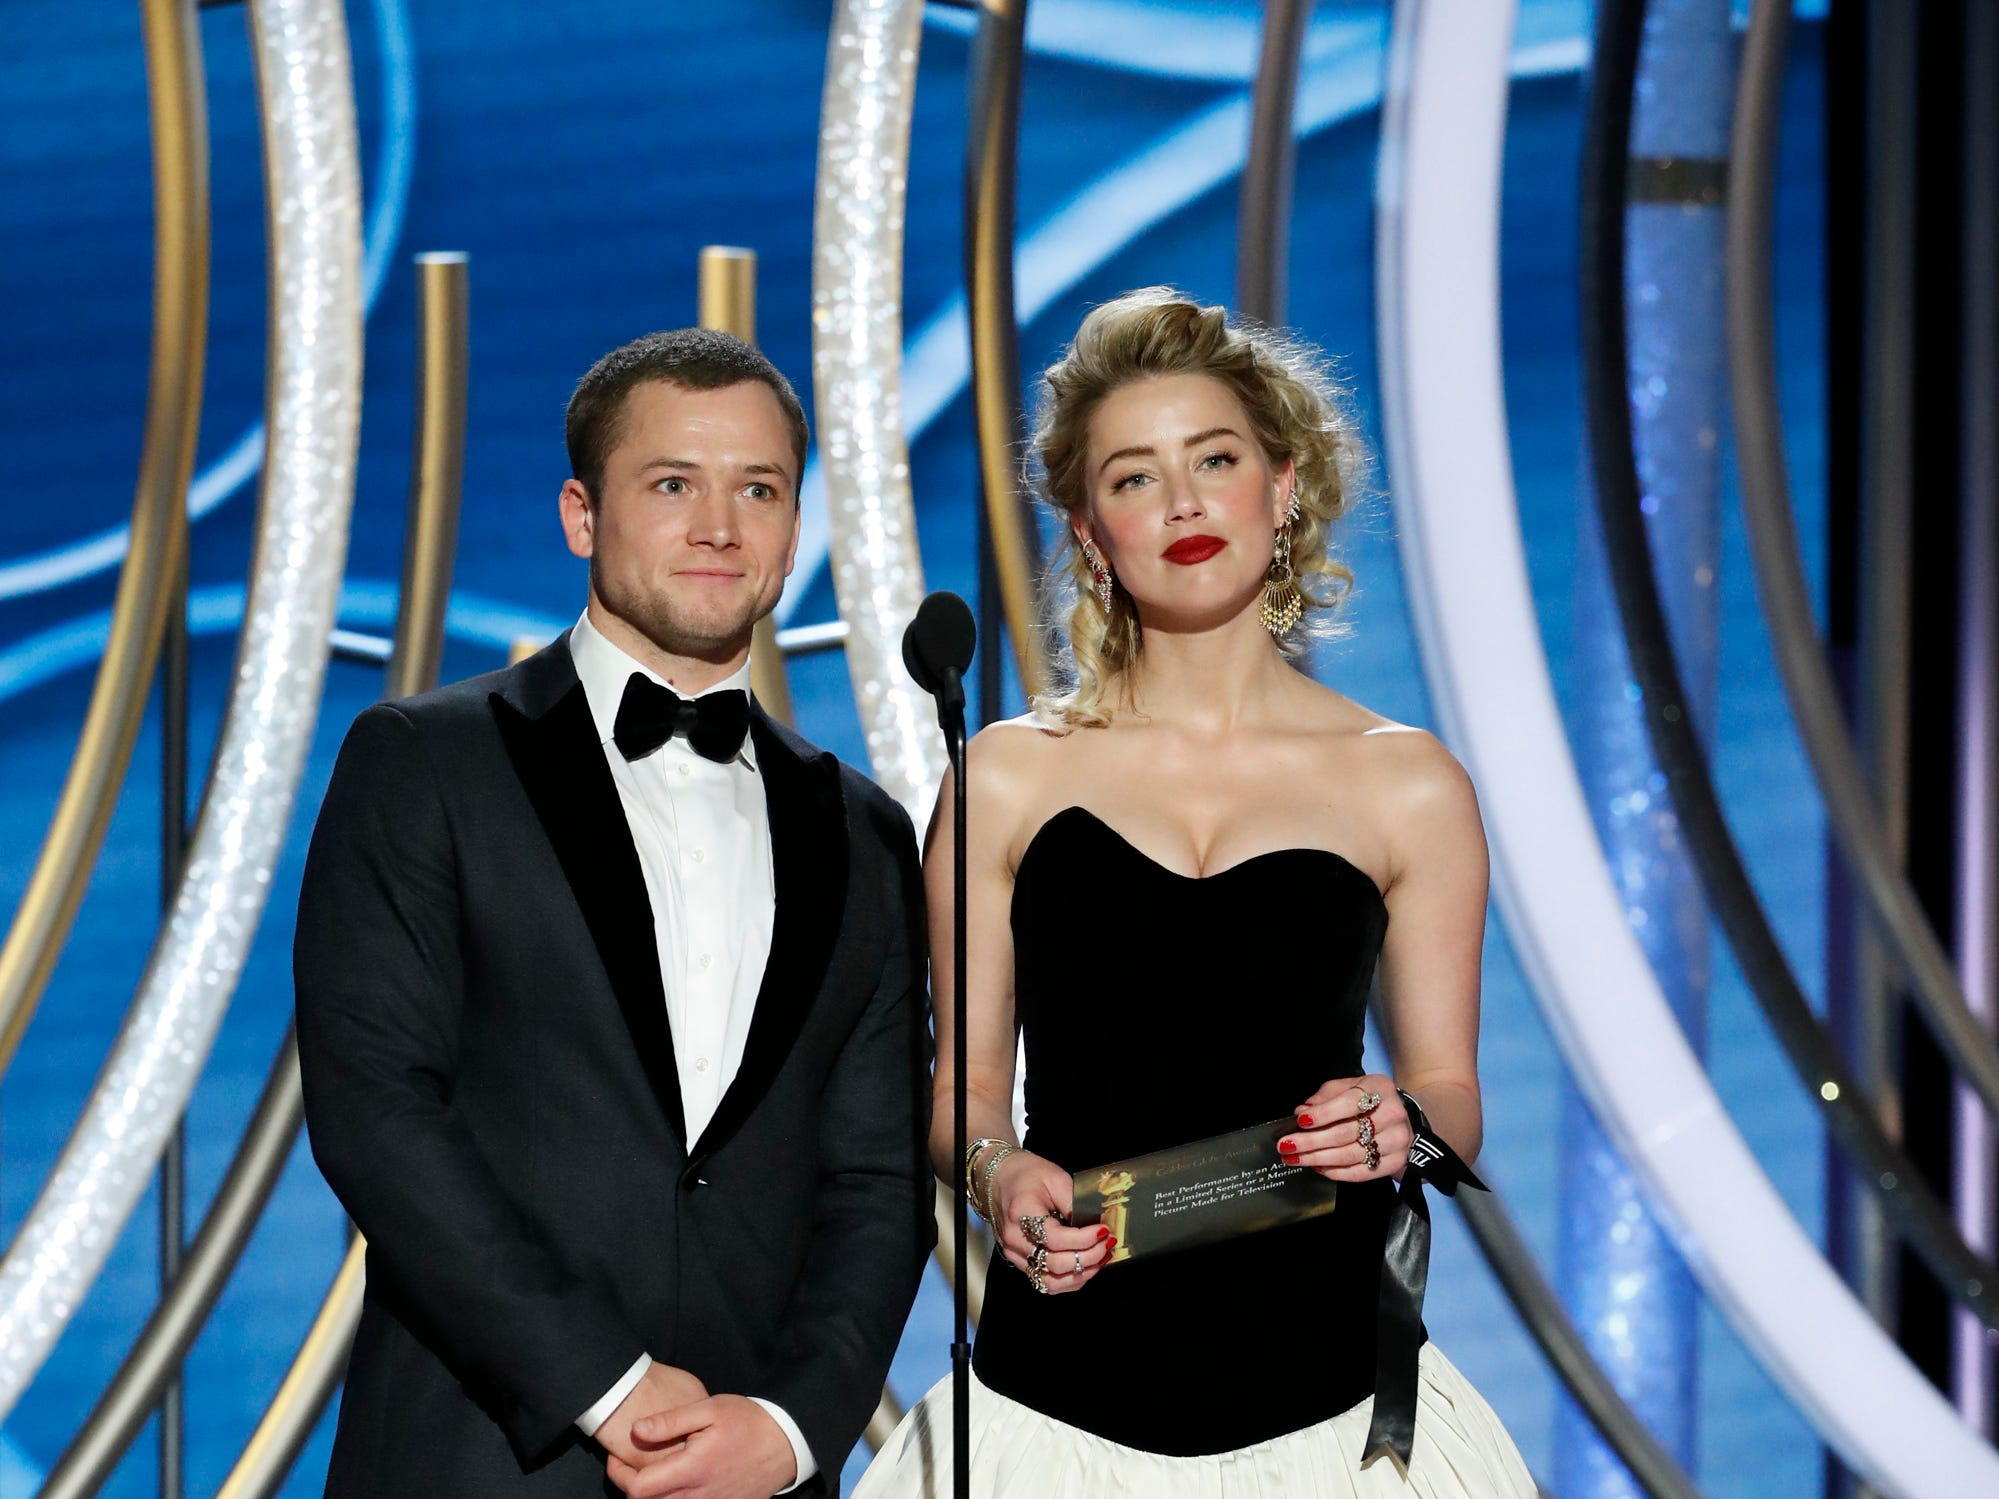 This image released by NBC shows presenters Taron Egerton, left, and Amber Heard during the 76th Annual Golden Globe Awards at the Beverly Hilton Hotel.